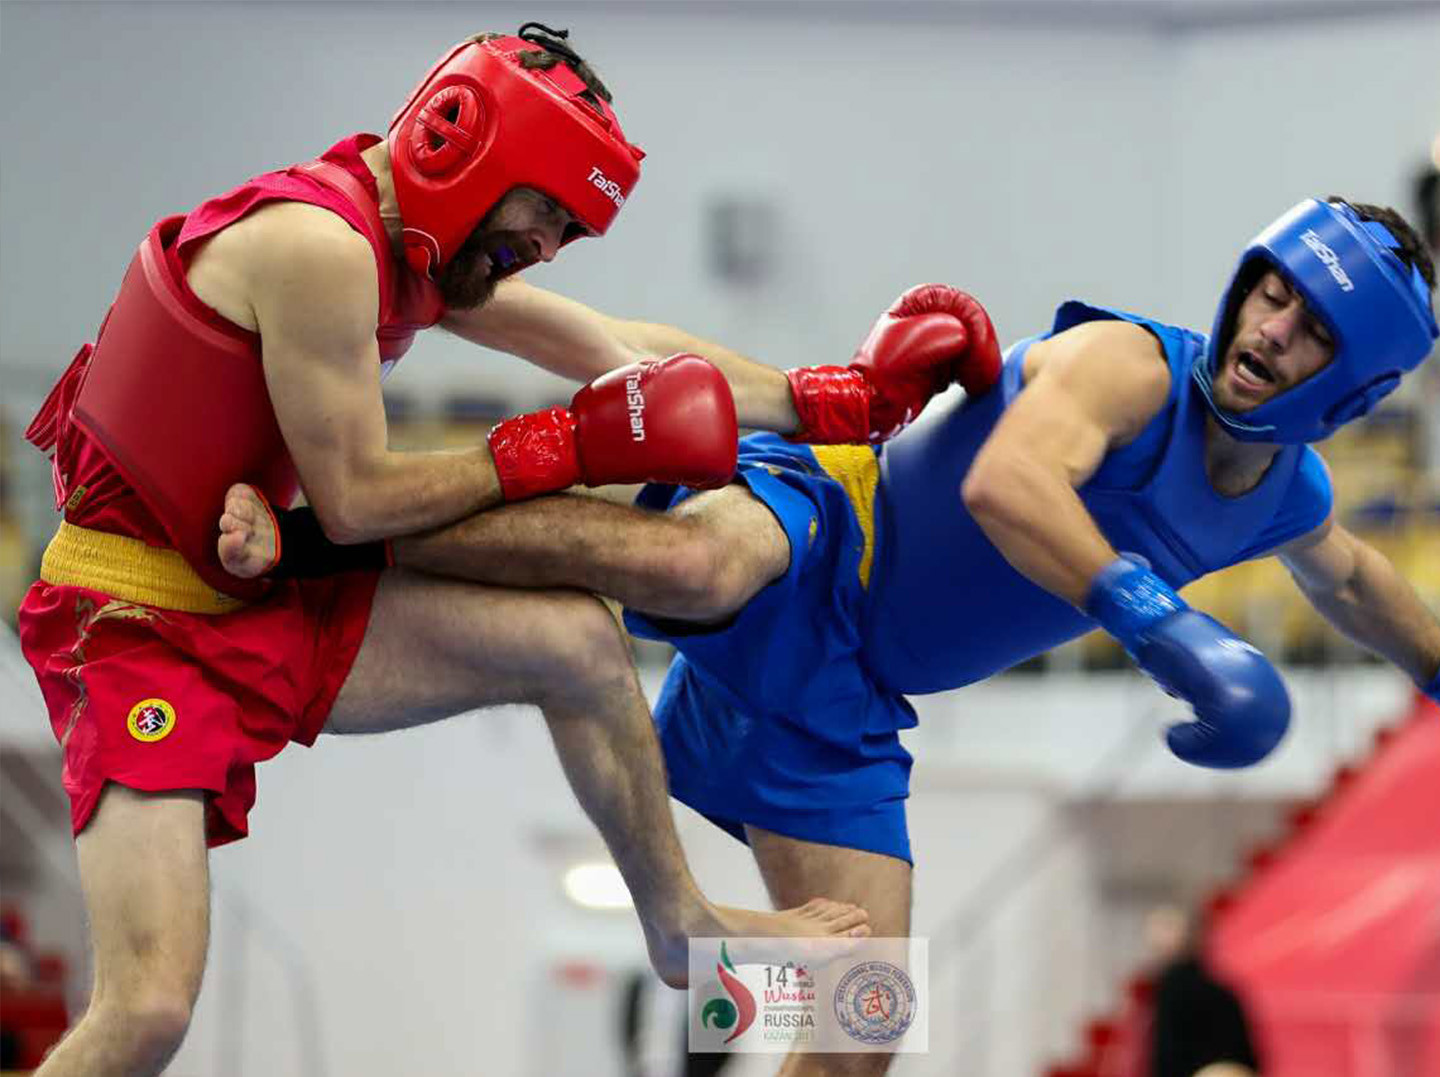 Wushu has applied to join the International World Games Association, as has sambo, with the decision due to be made on May 27 ©Getty Images